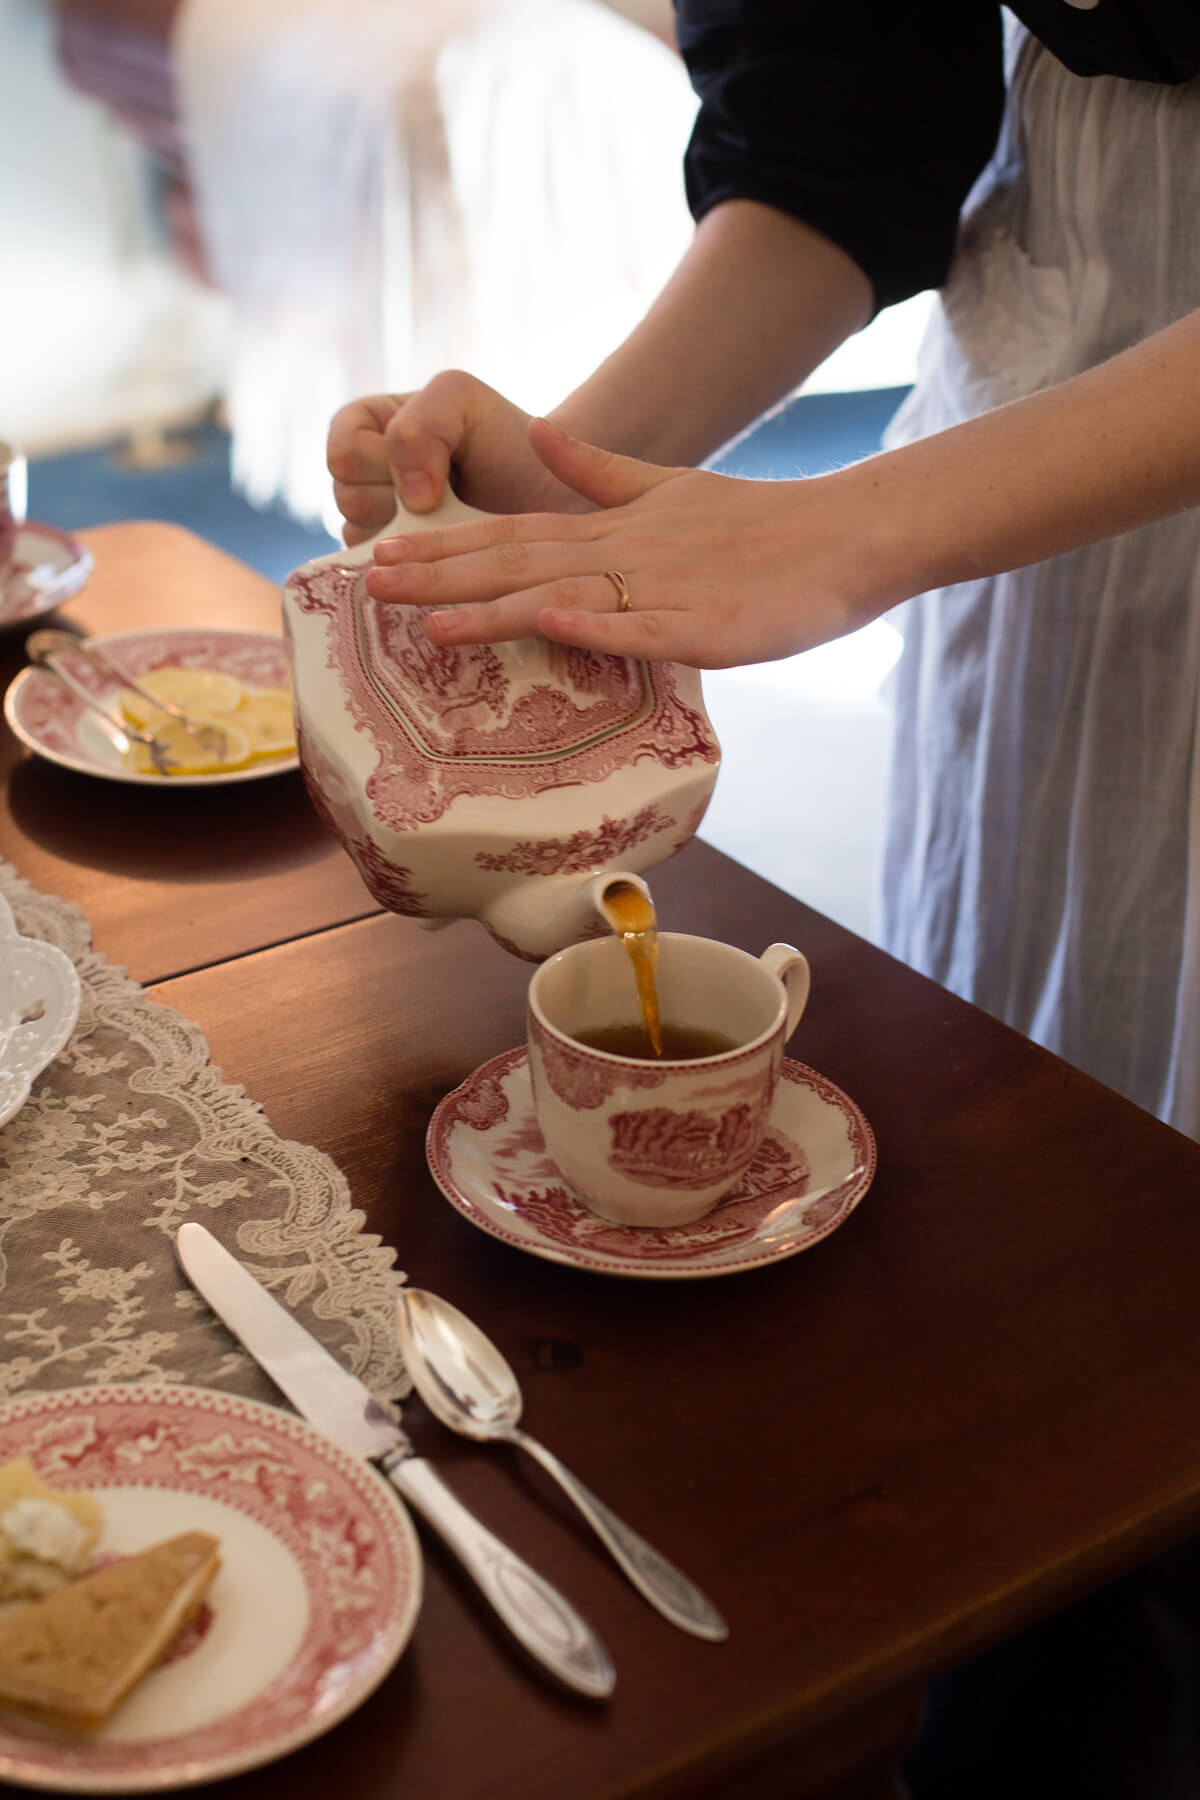 Domestic servant pouring tea into china cup.